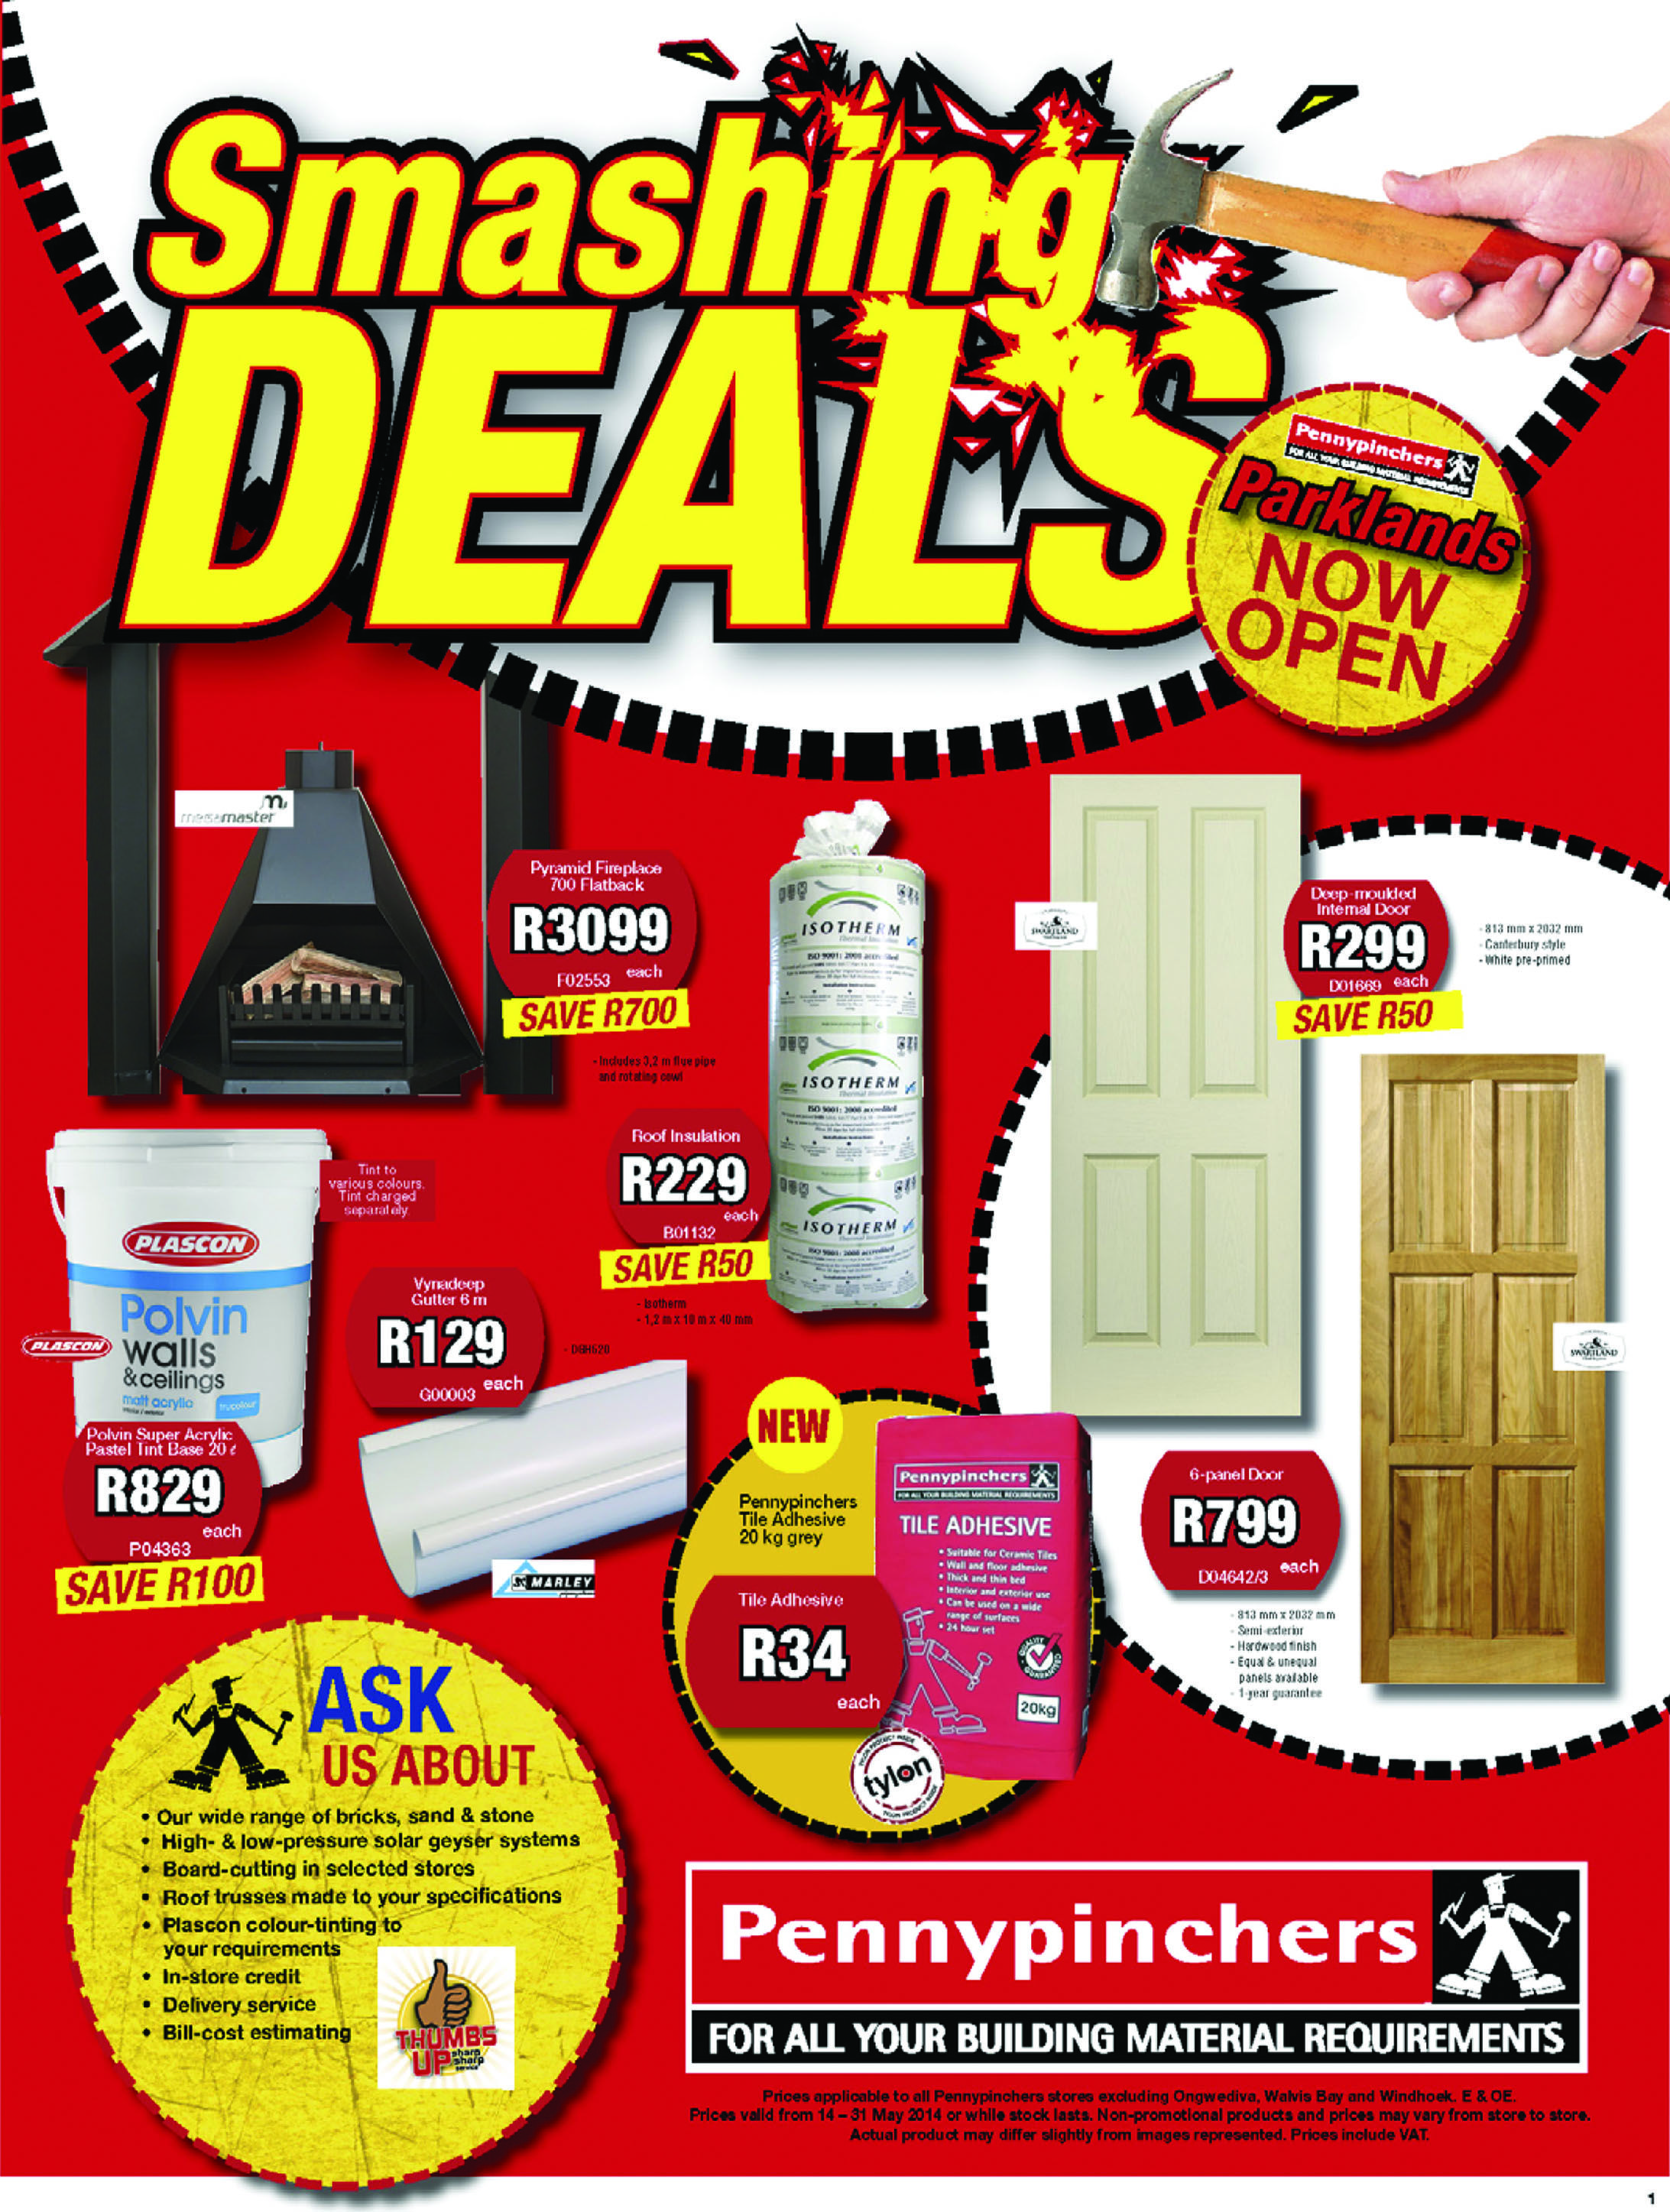 Smashing DEALS - Prices valid from 14 May 2014 to 31 May 2014 or while stock lasts. Non-promotional products and prices may vary from store to store. Actual product may differ slightly from images represented. Prices include VAT. E&OE